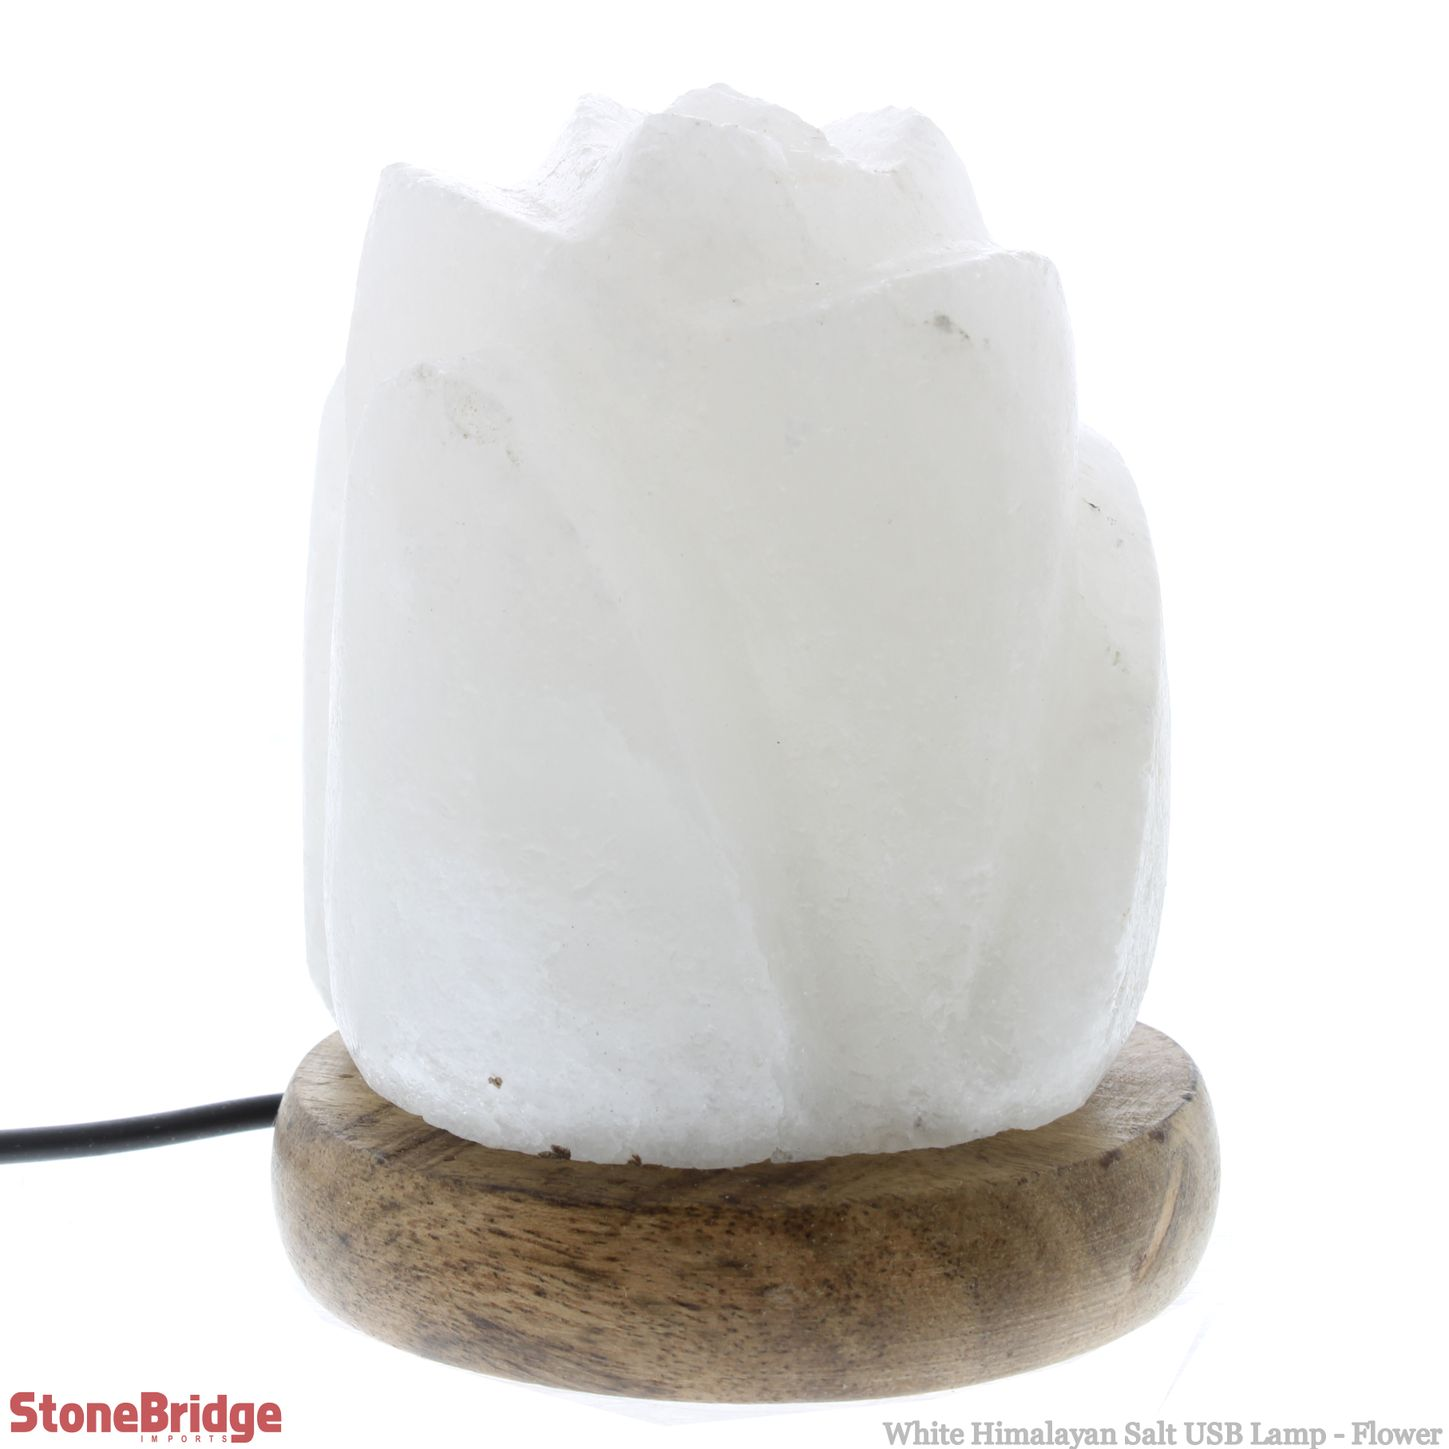 LASAUSRWfl_White Himalayan Salt USB Lamp Flower_7.jpg